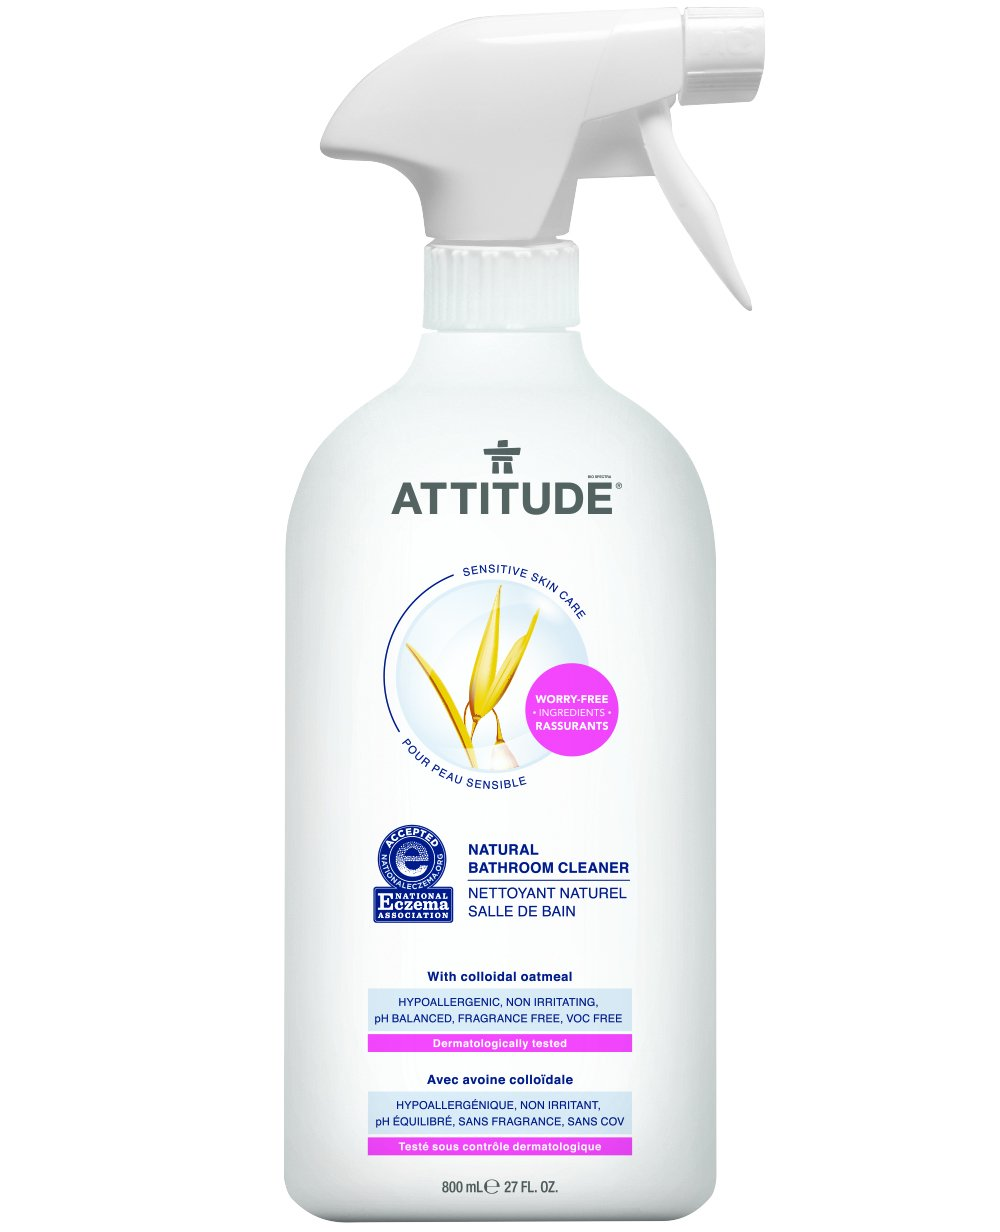 Natural Bathroom Cleaner, Hypoallergenic, Free of Contaminants and Potentially Harmful Preservatives, 100% Safe. (27.1 oz)